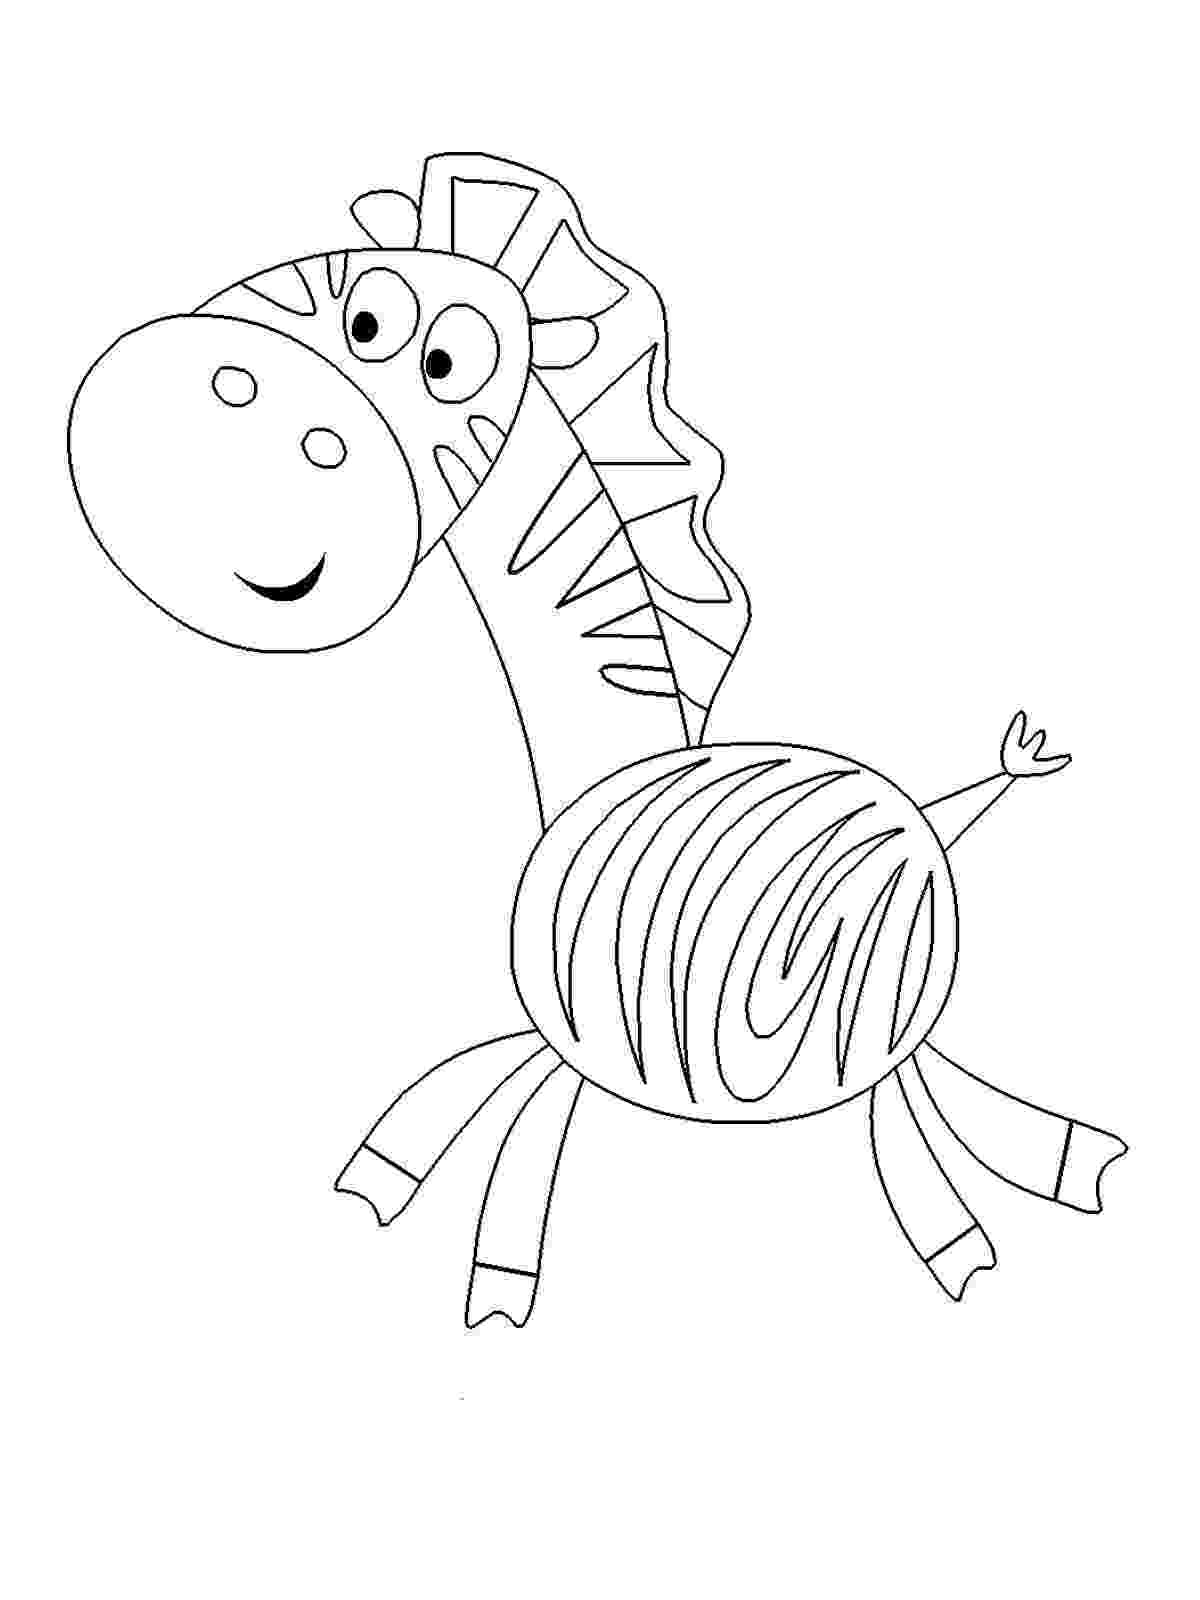 coloring pages for free elmo coloring pages to download and print for free for pages free coloring